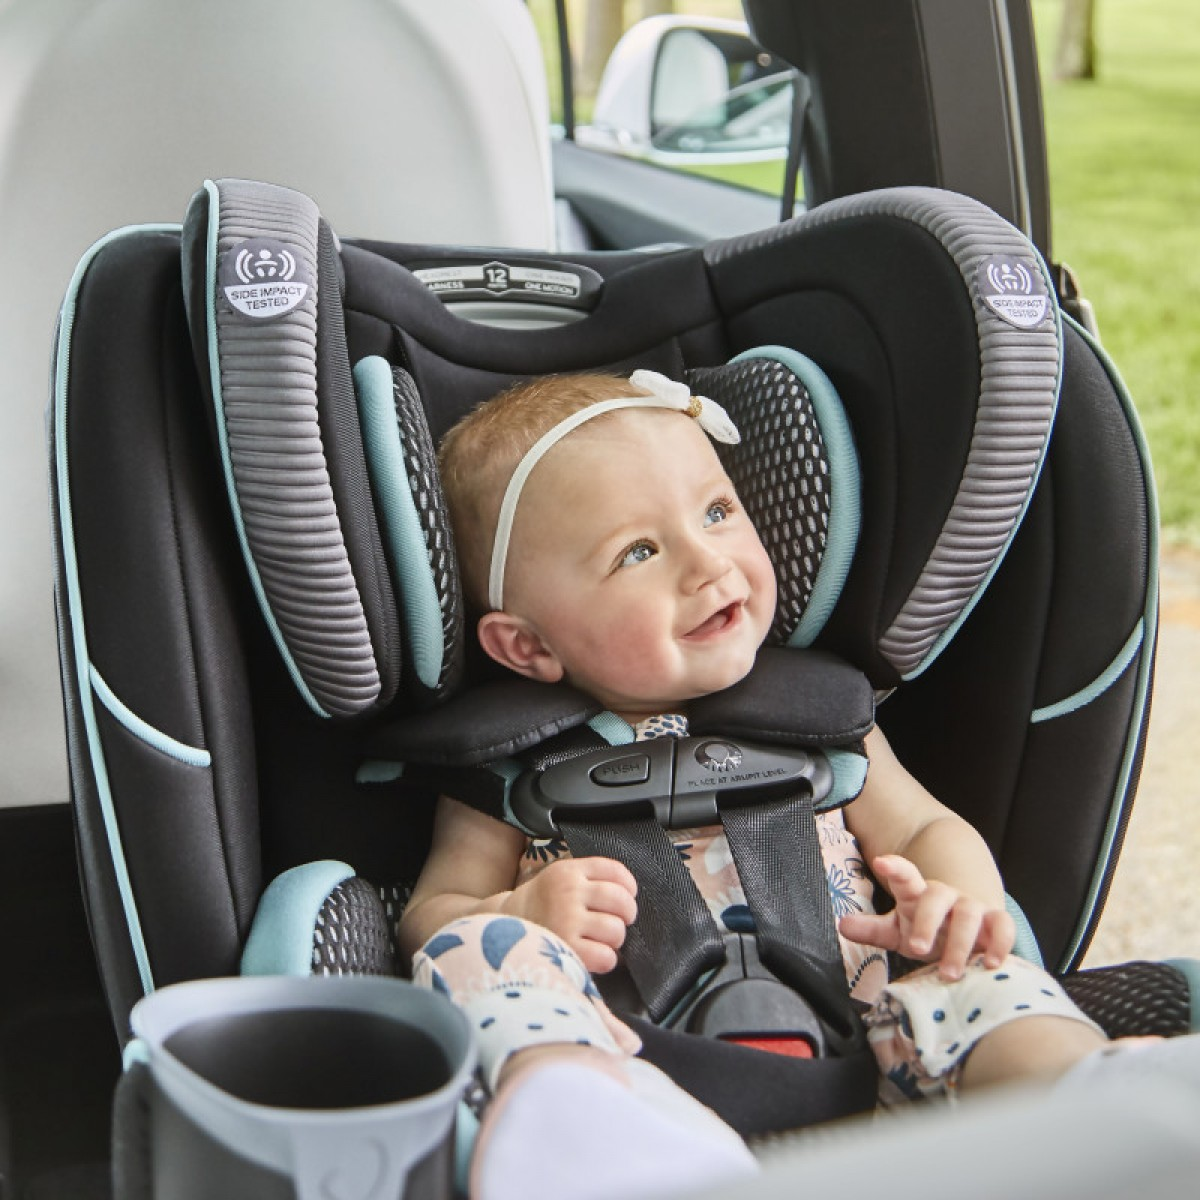 EVENFLO EveryFit 4-in-1 Car Convertible Seat - Made in USA (0-54kg)